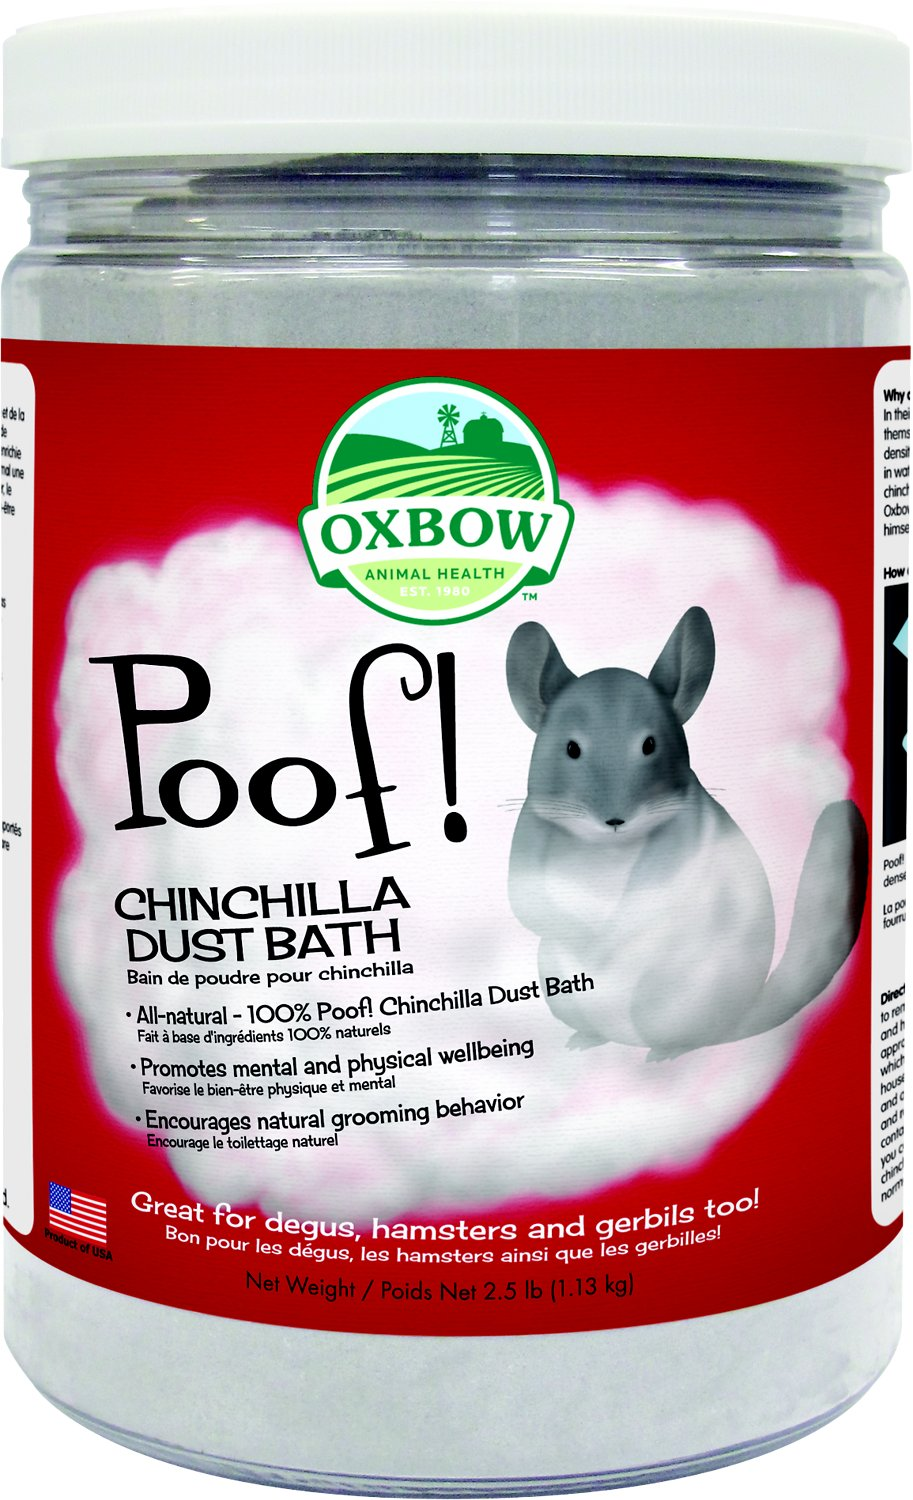 Oxbow Poof! Chinchilla Dust Bath, Blue Cloud, 2.5-lb jar